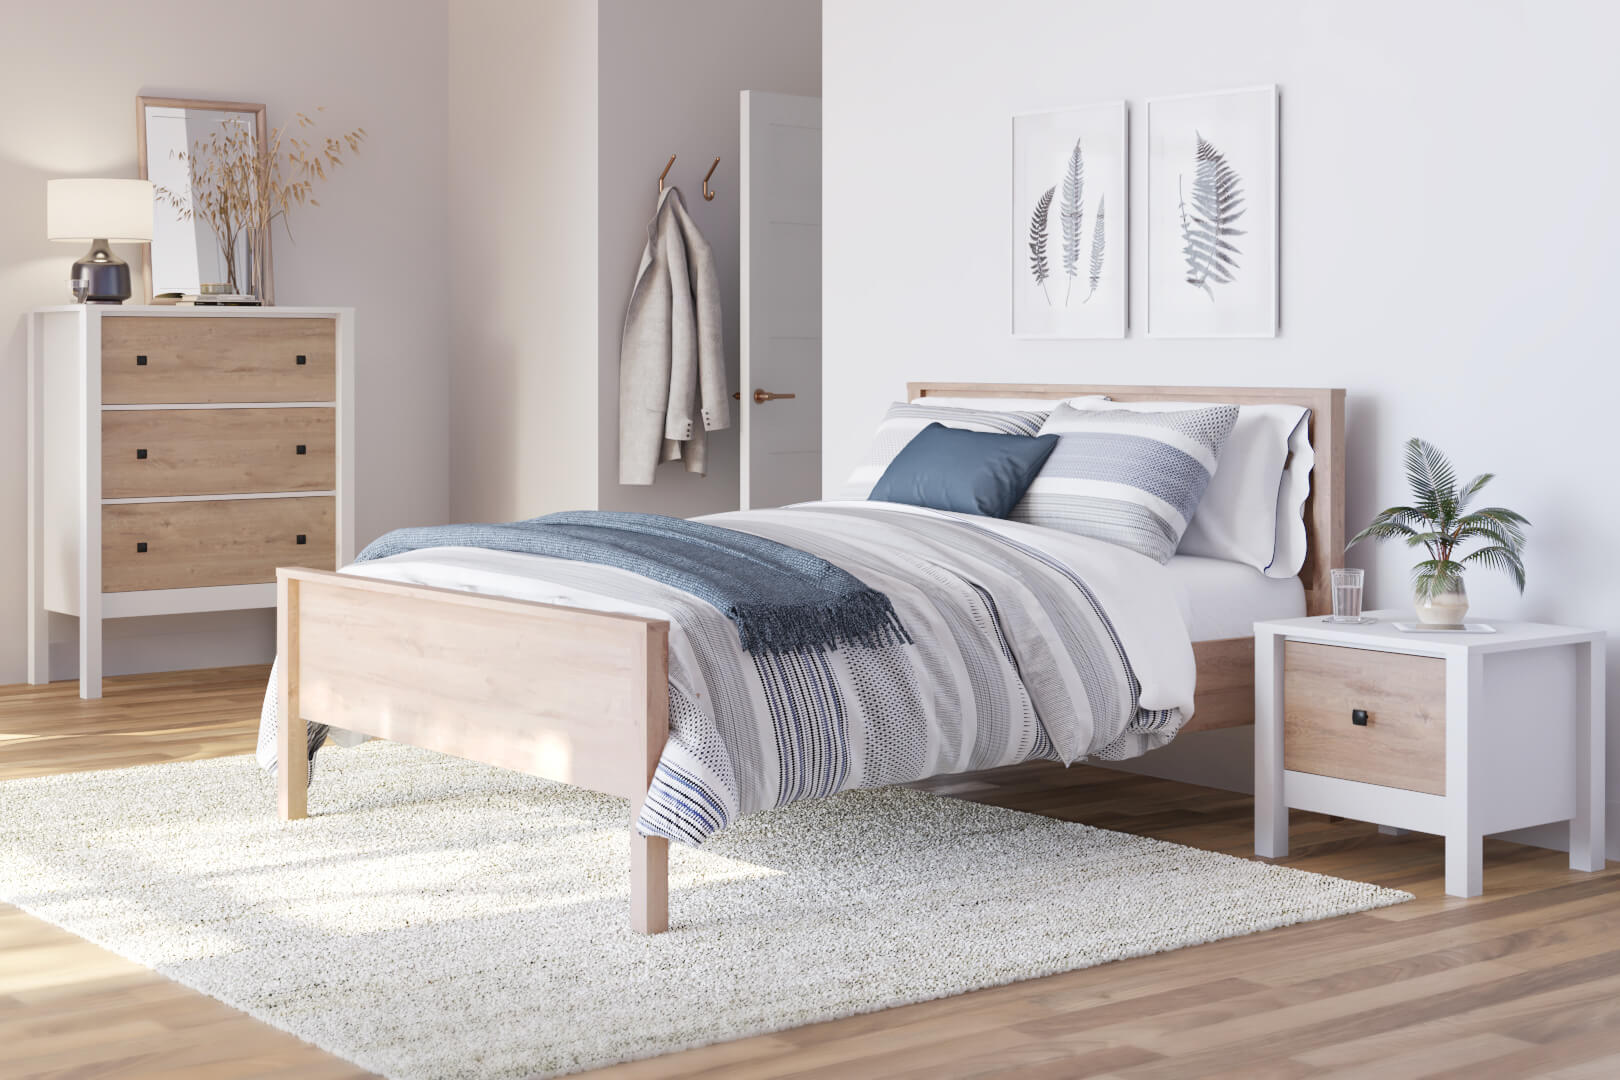 bedroom with bed, nightstand and storage